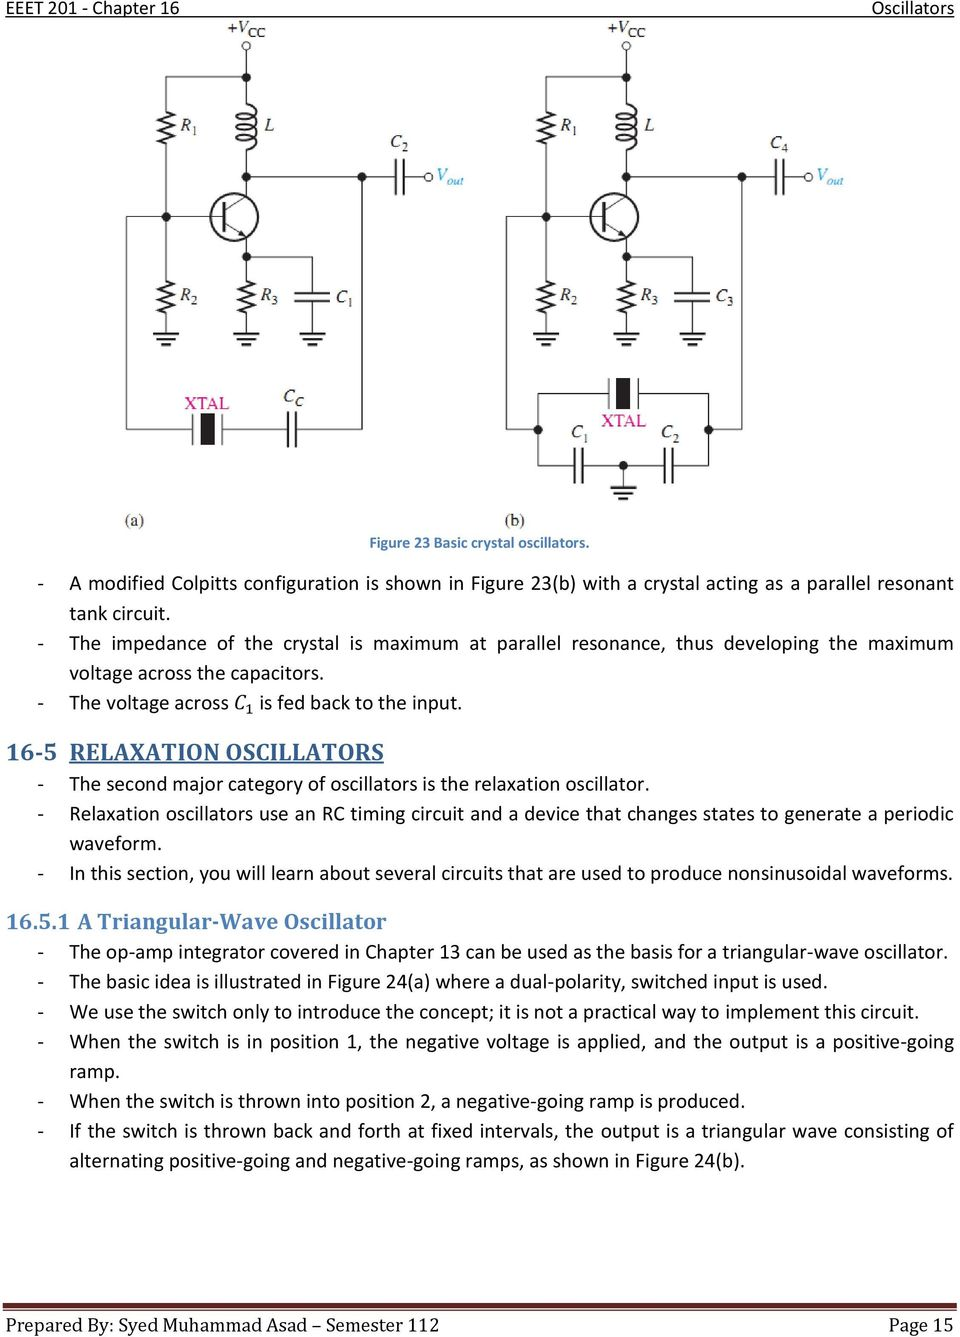 16-5 RELAXATION OSCILLATORS - The second major category of oscillators is the relaxation oscillator.